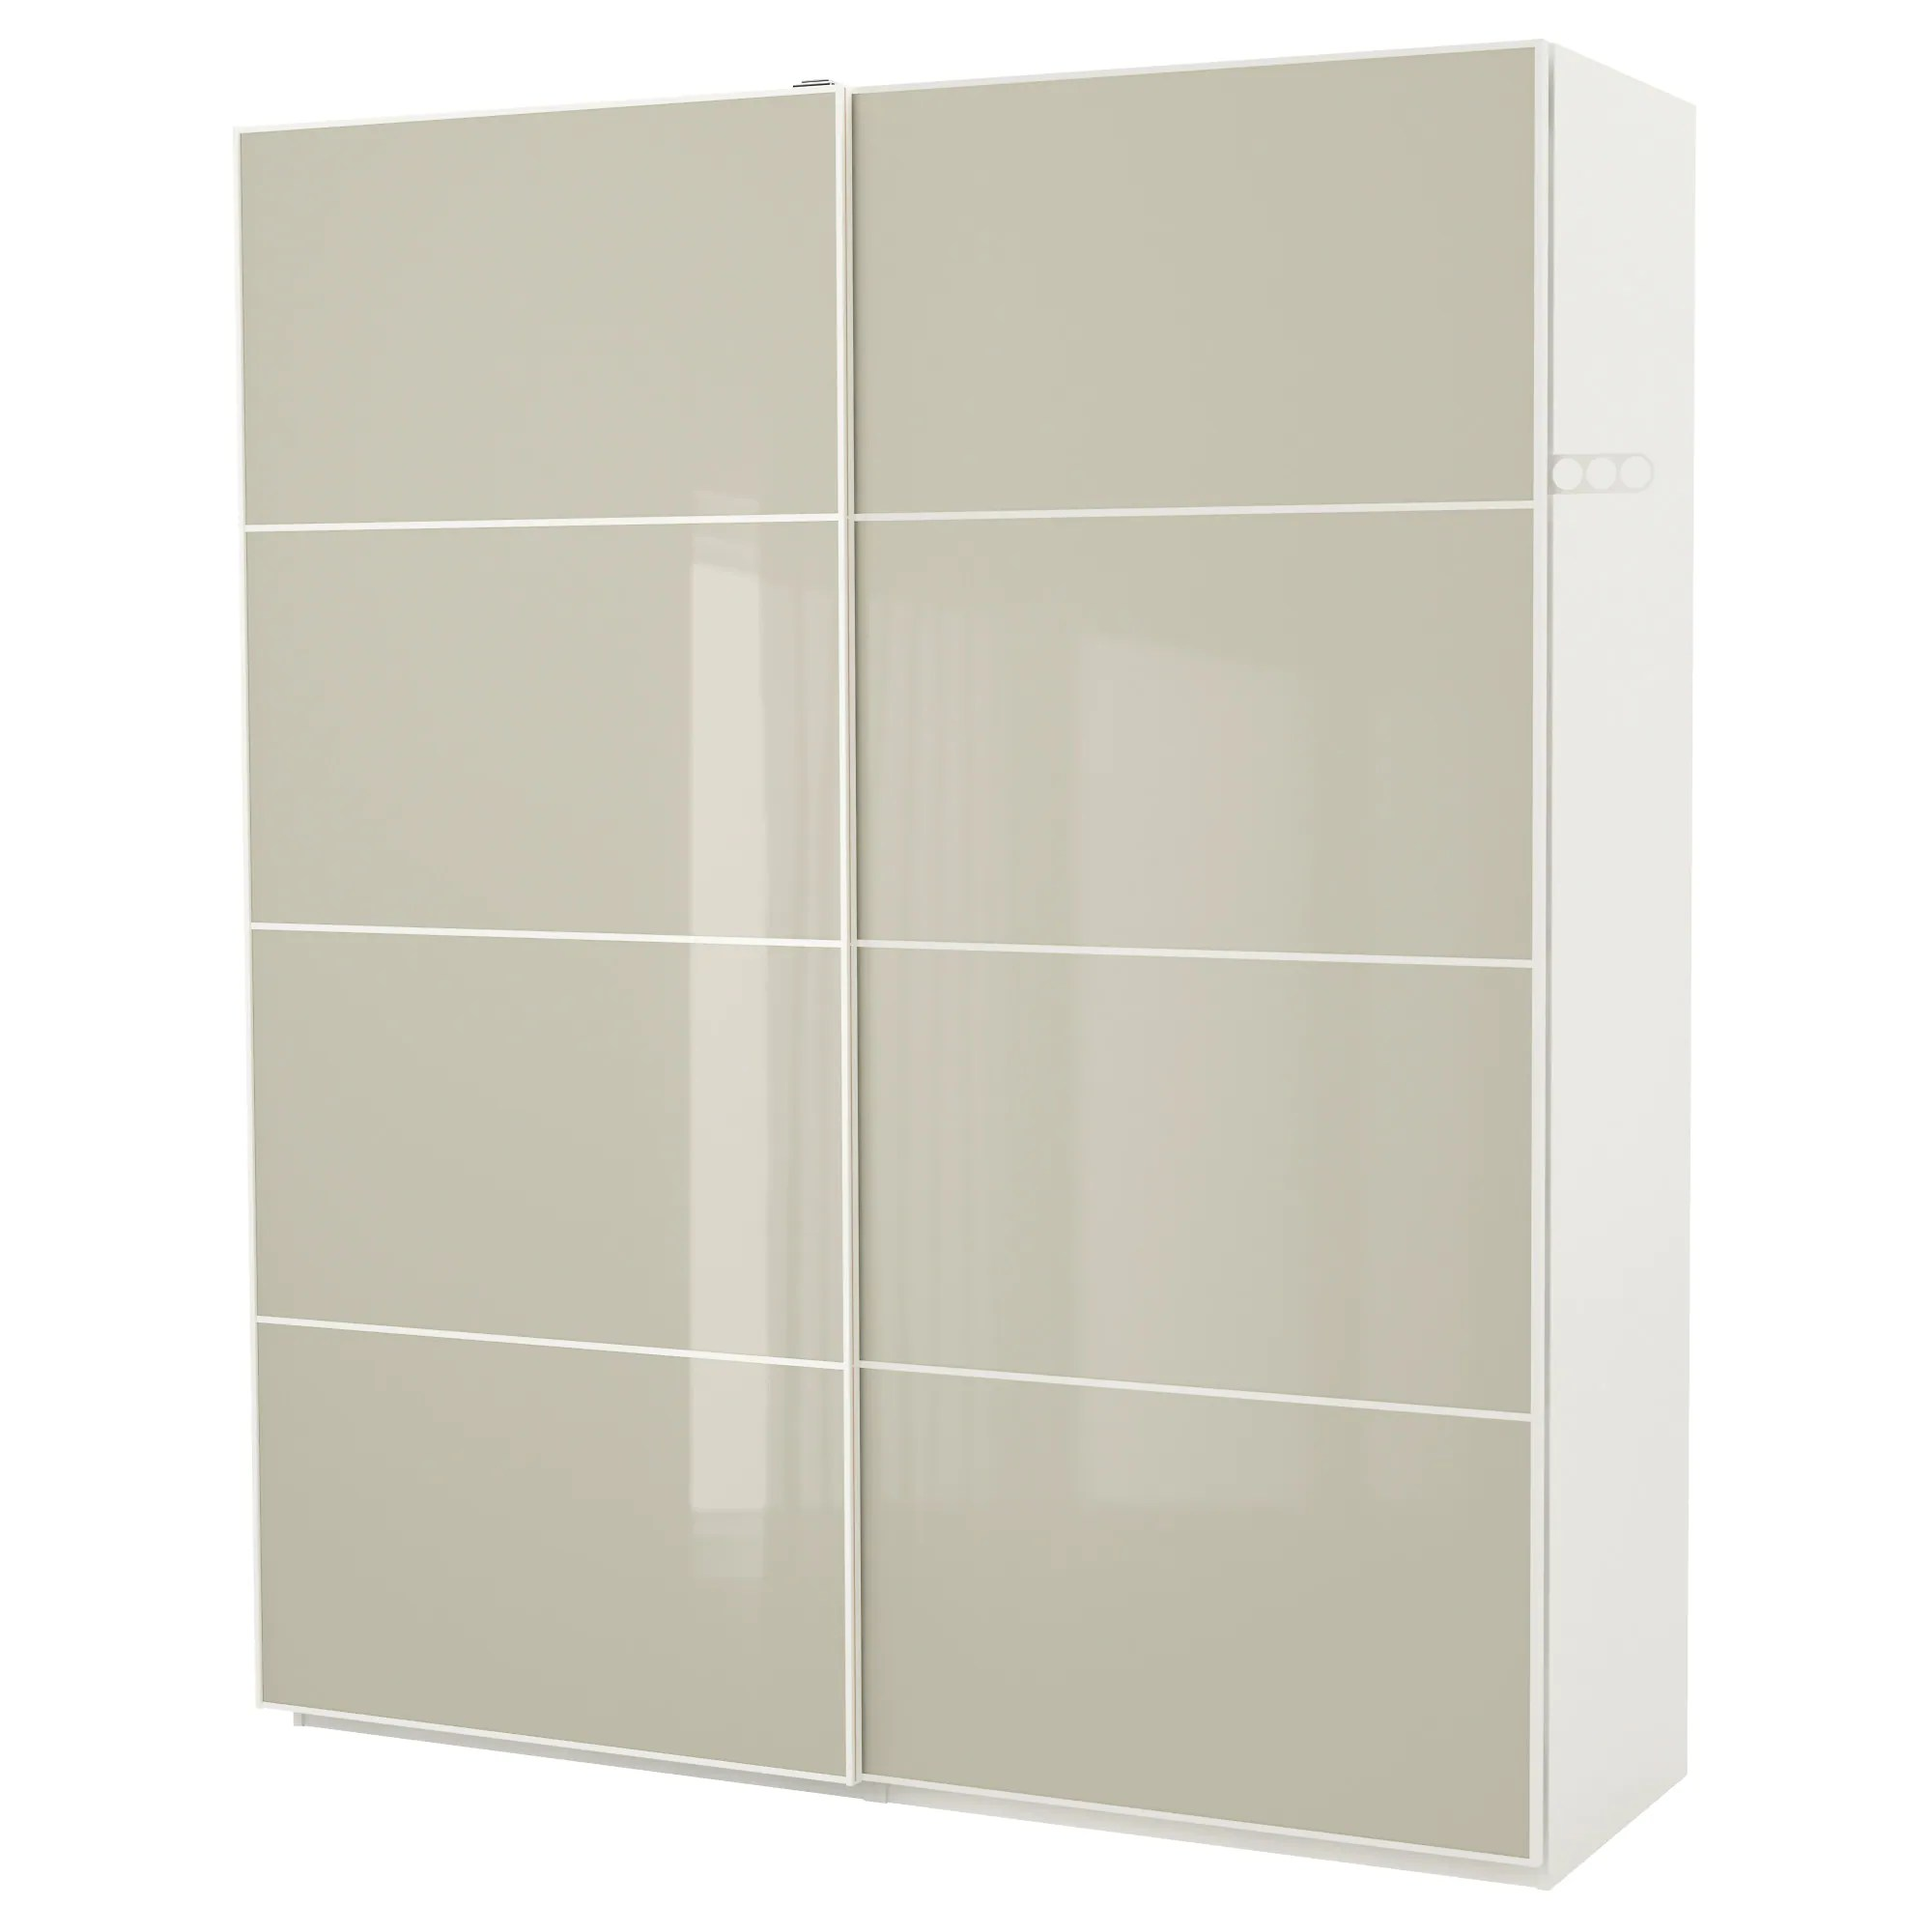 Ikea Schrank Code Pax Wardrobe White Hokksund Hokksund High Gloss Light Beige